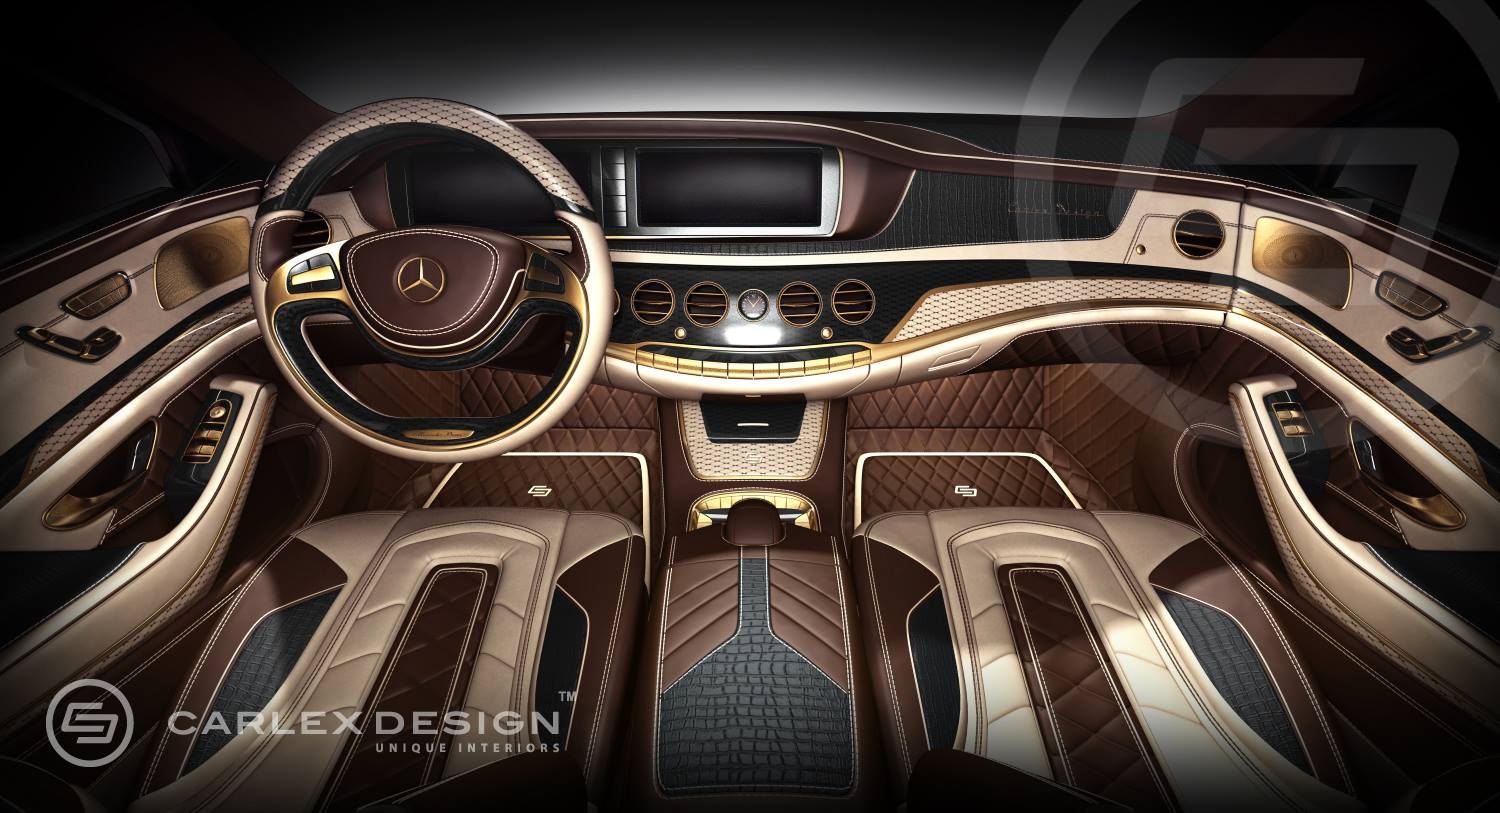 Carlex mercedes s class interior 24k gold and crocodile leather autoevolution